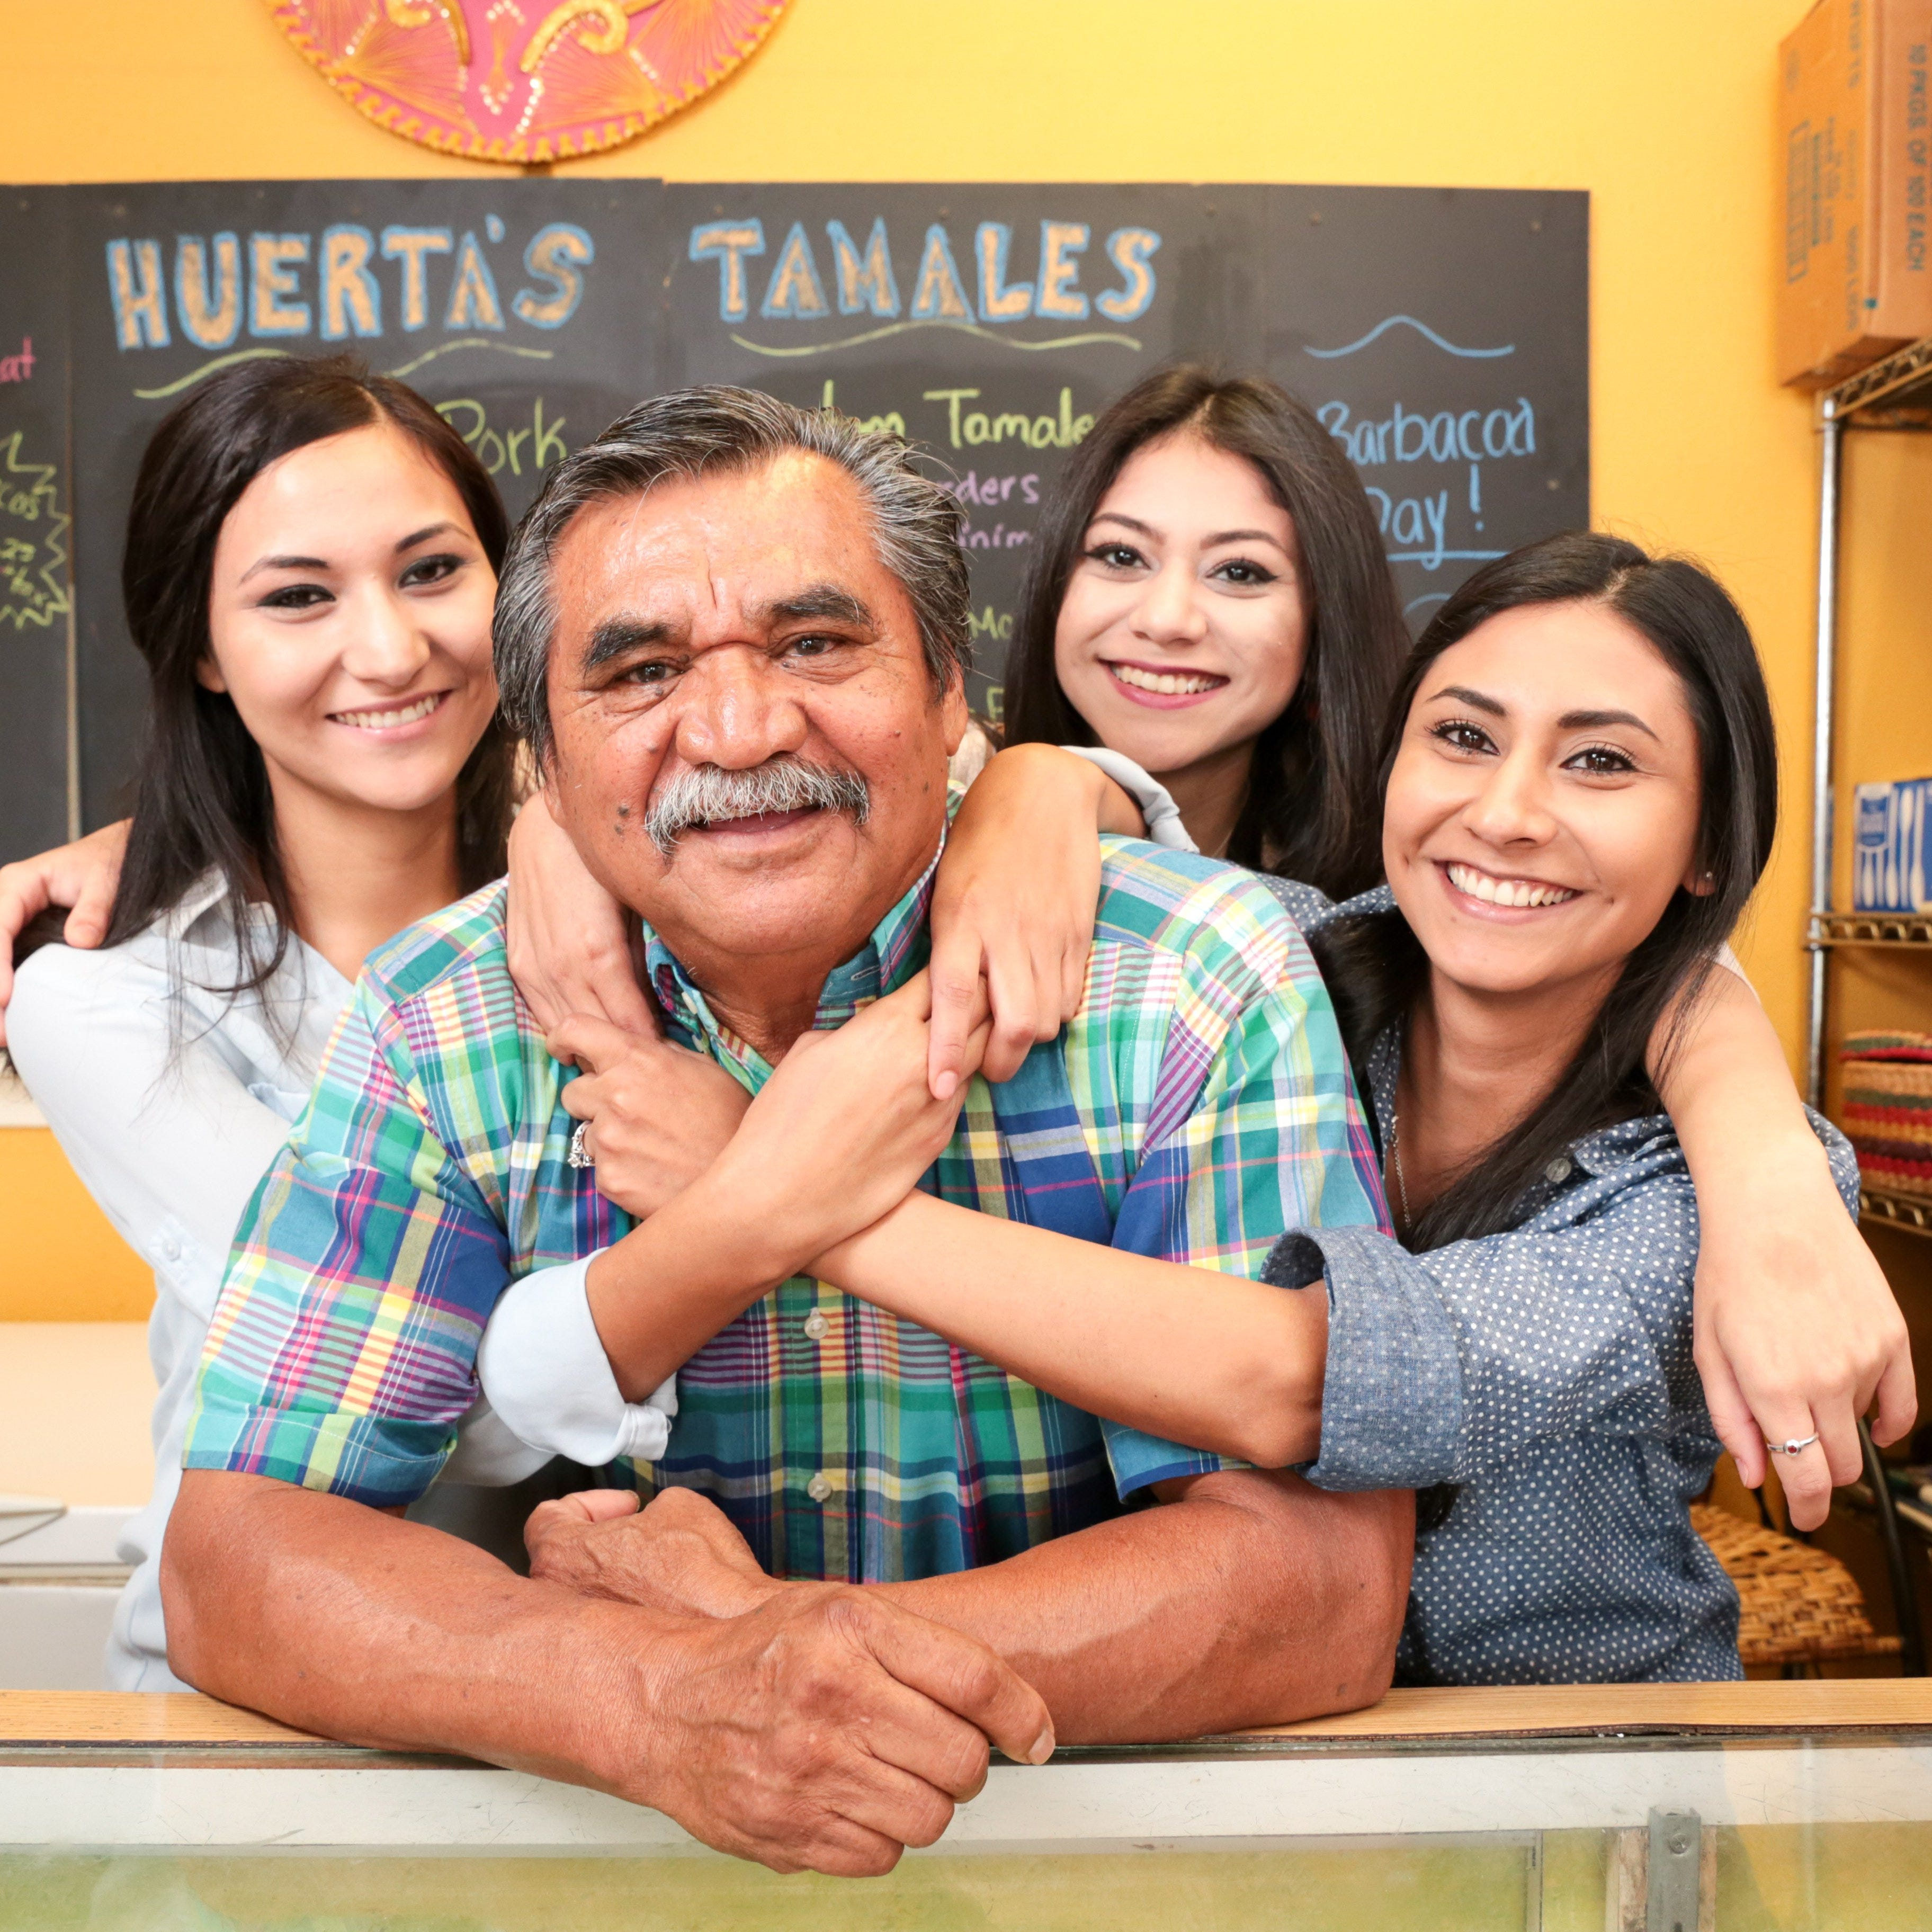 The final tamalada: Corpus Christi's Huerta's Tamales shop to close